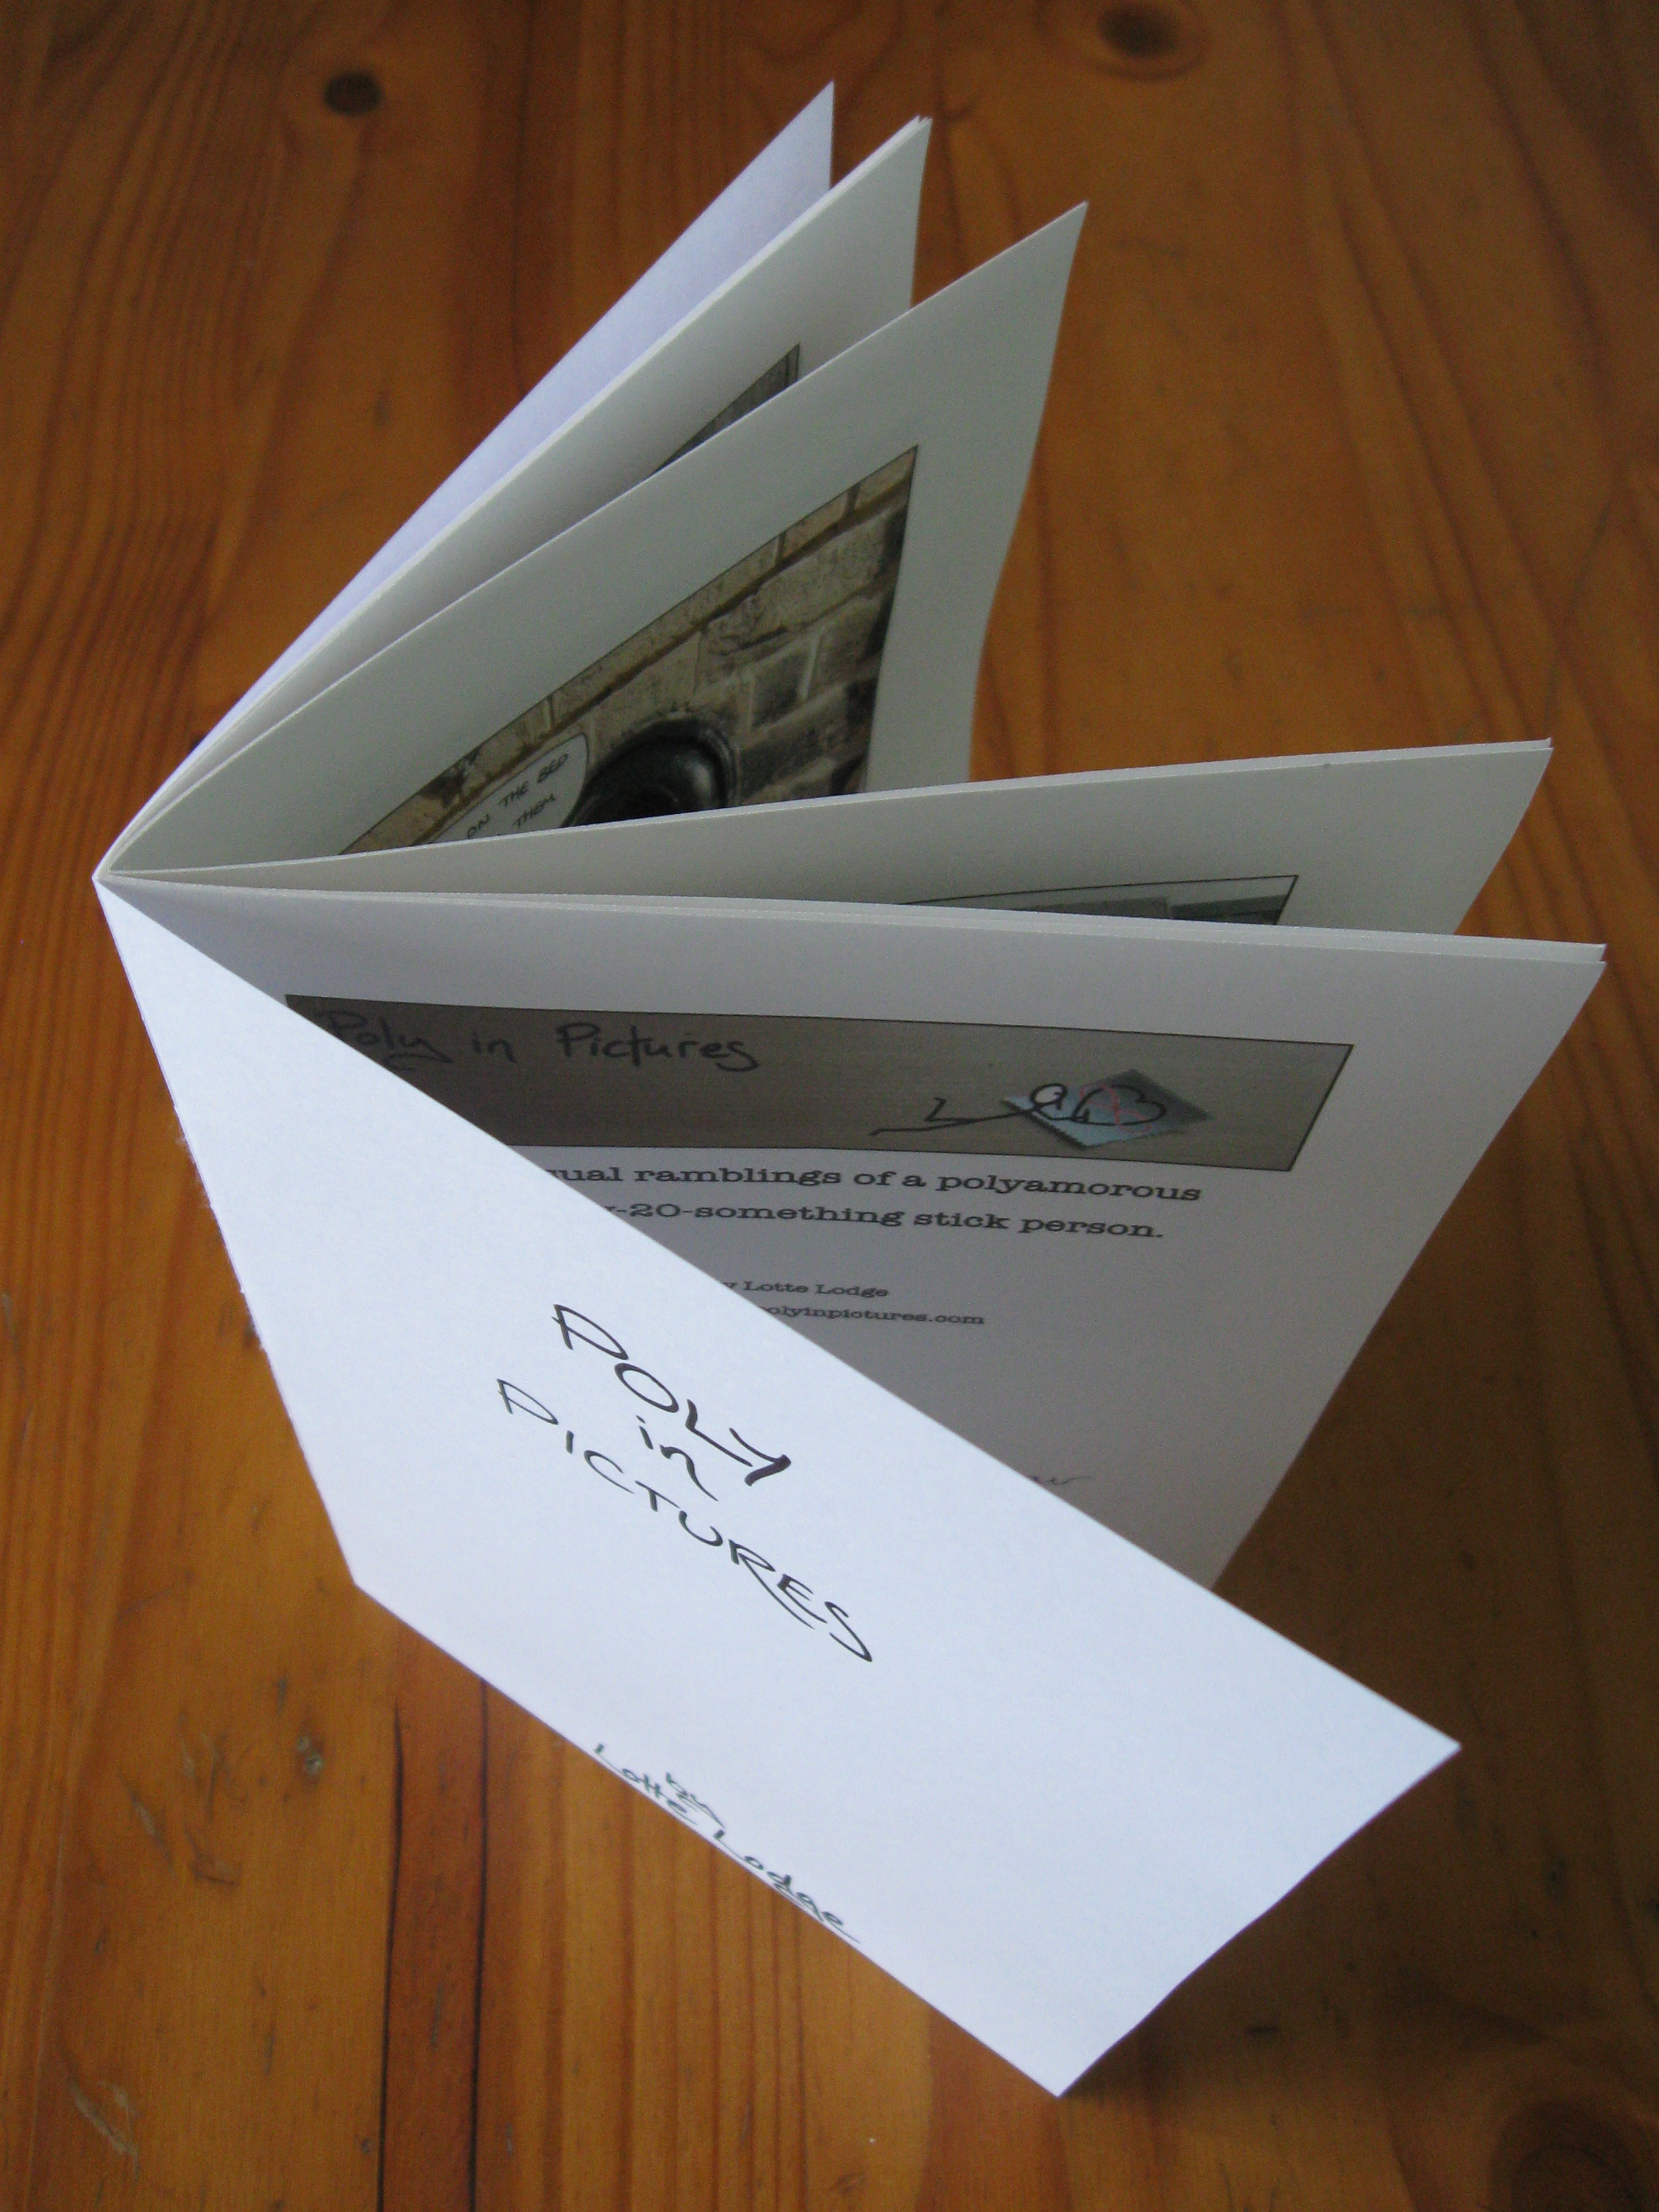 A custom comic booklet I made, photographed from above, as it is standing up like a birthday card on display. The front cover and parts of some of the comics within are visible.